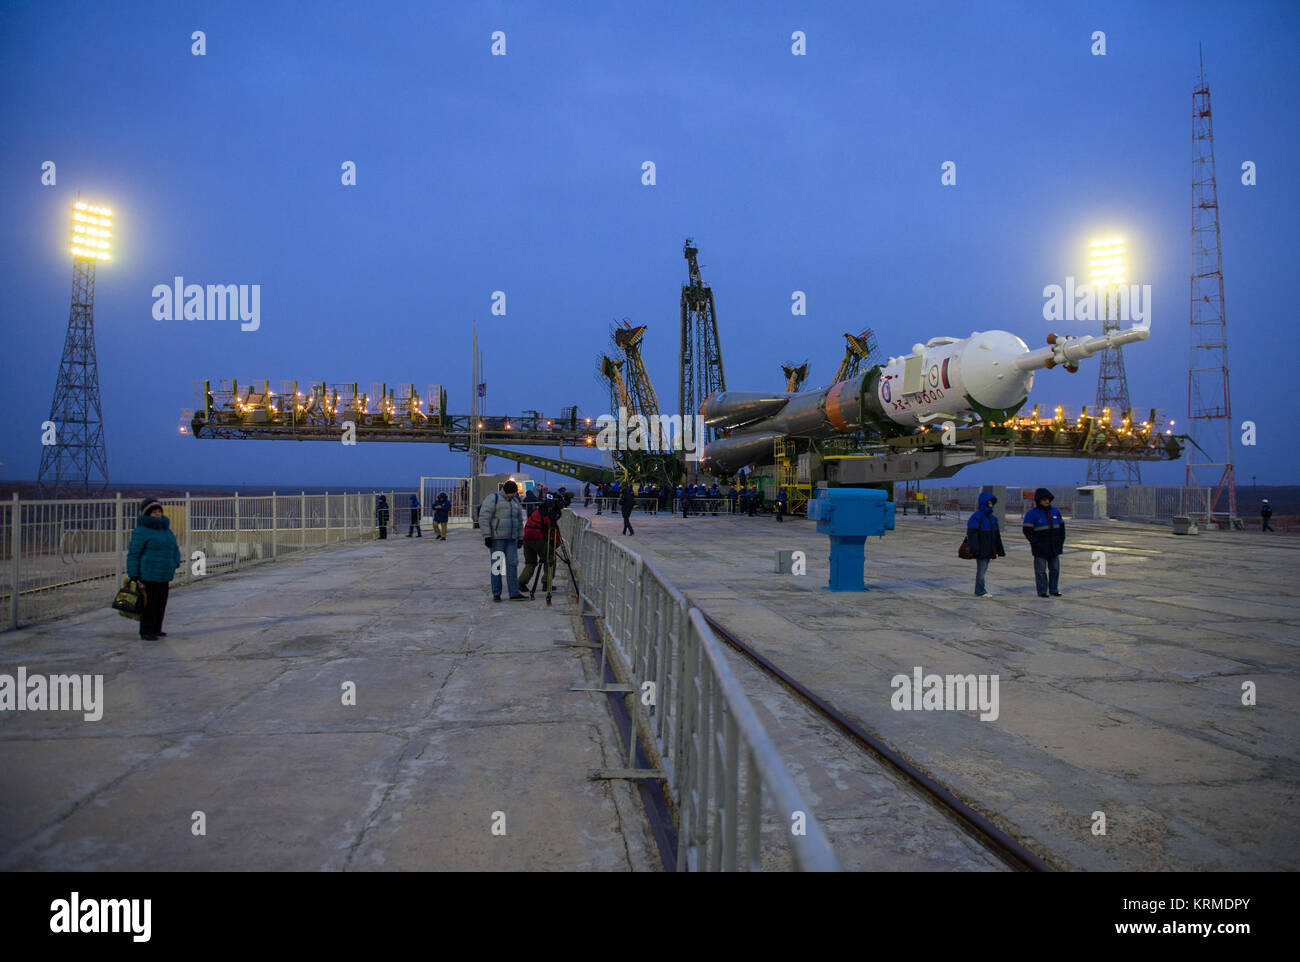 The Soyuz TMA-20M spacecraft is prepared to be raised into position on the launch pad Wednesday, March 16, 2016 Stock Photo